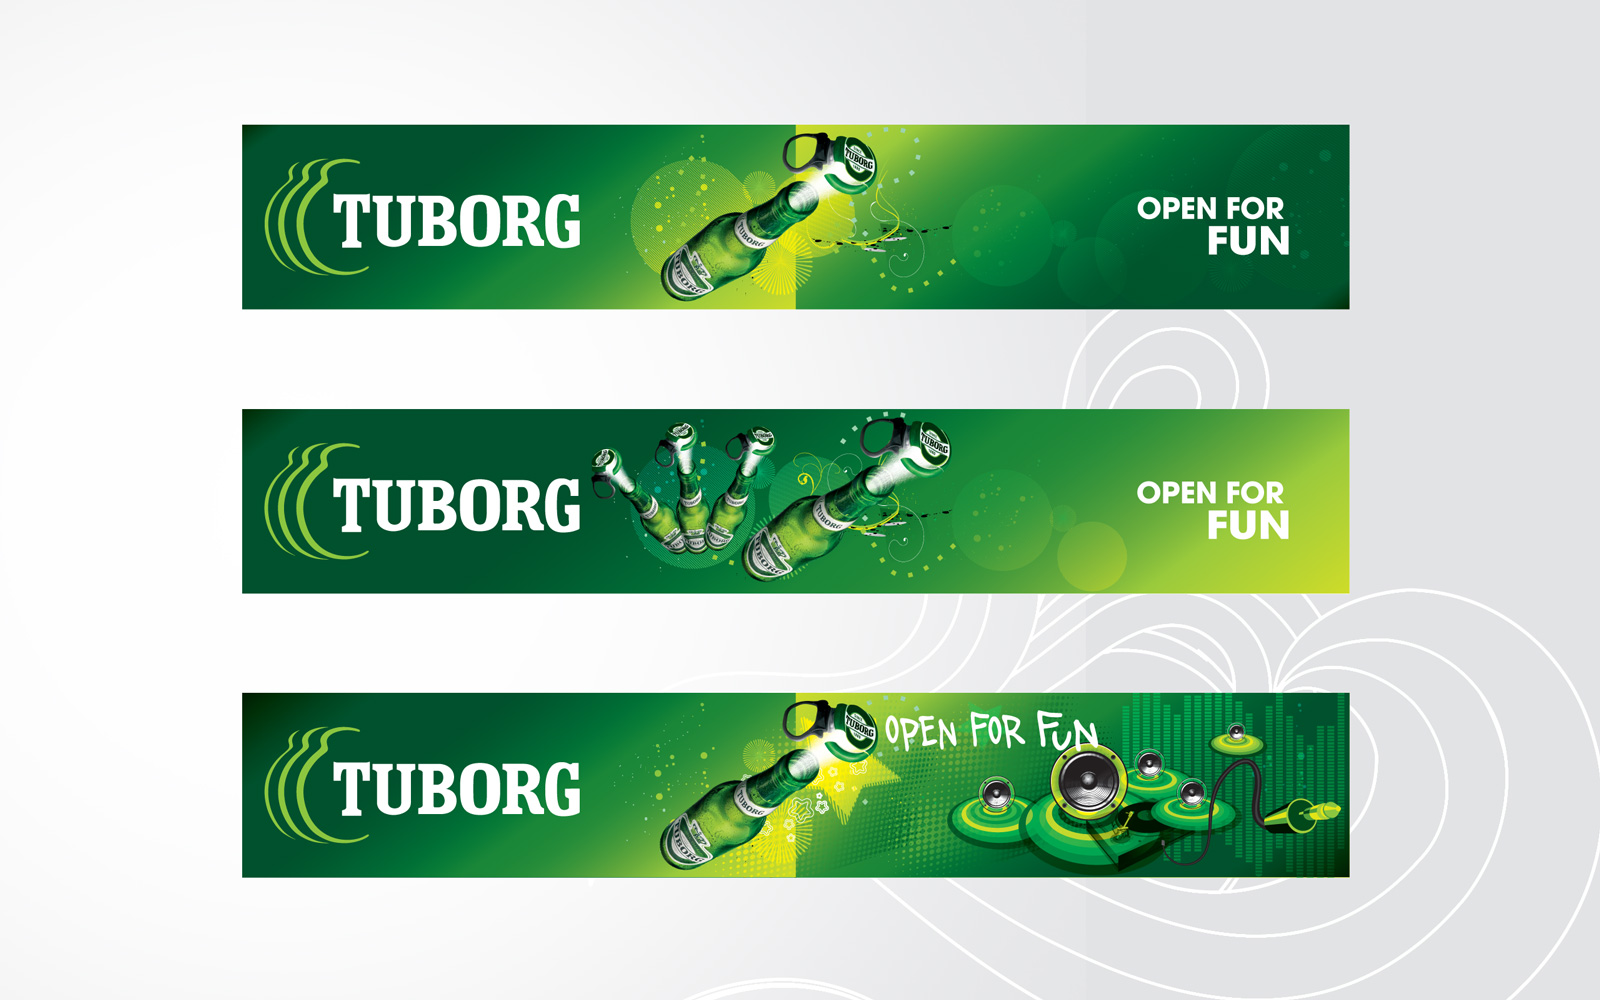 tuborg outdoor design retail promotional campaign